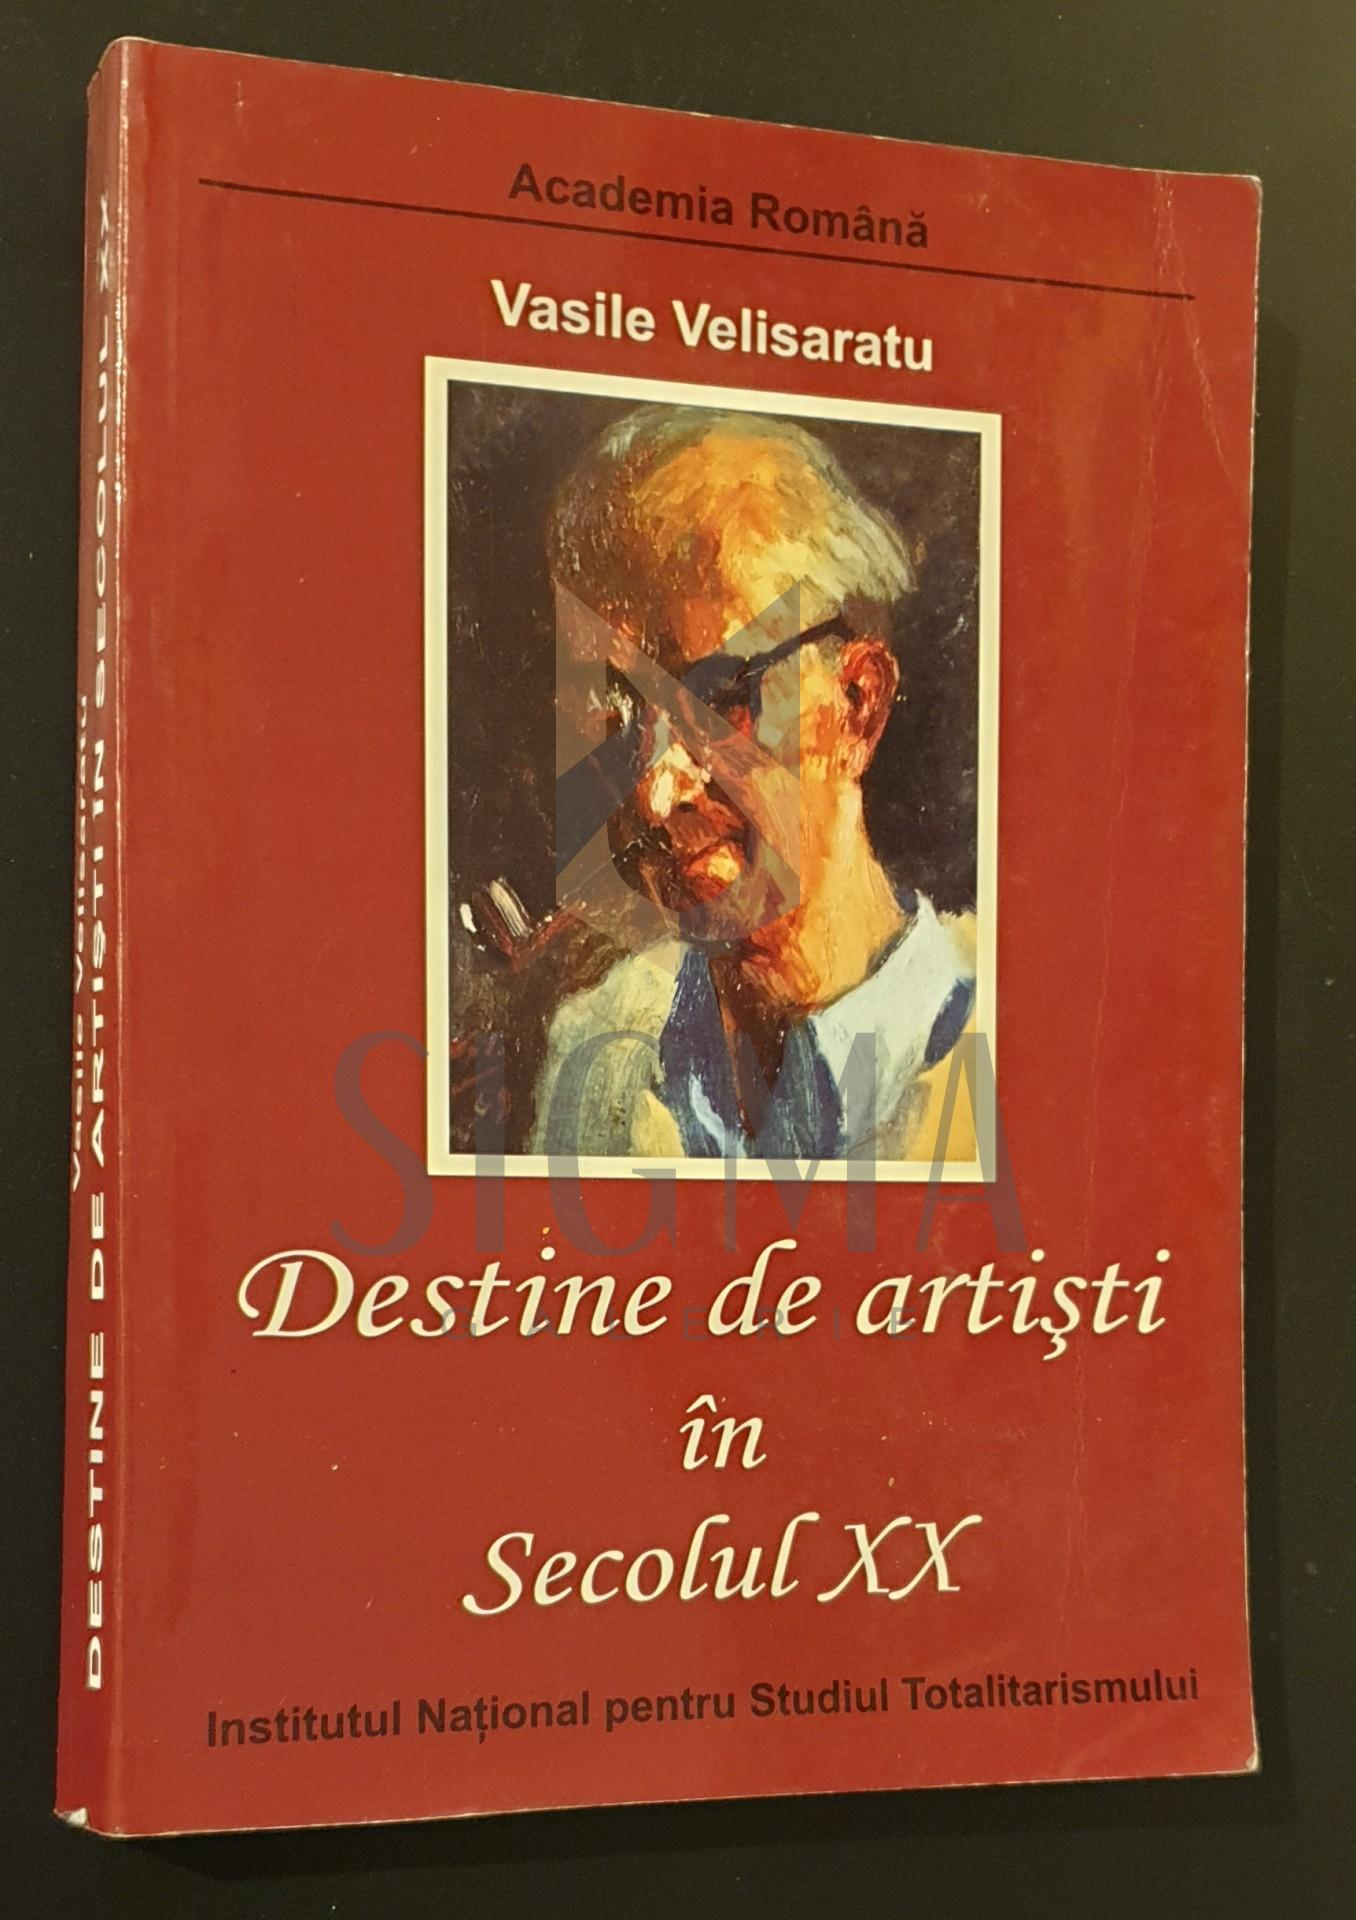 Destine de artisti in Secolul XX